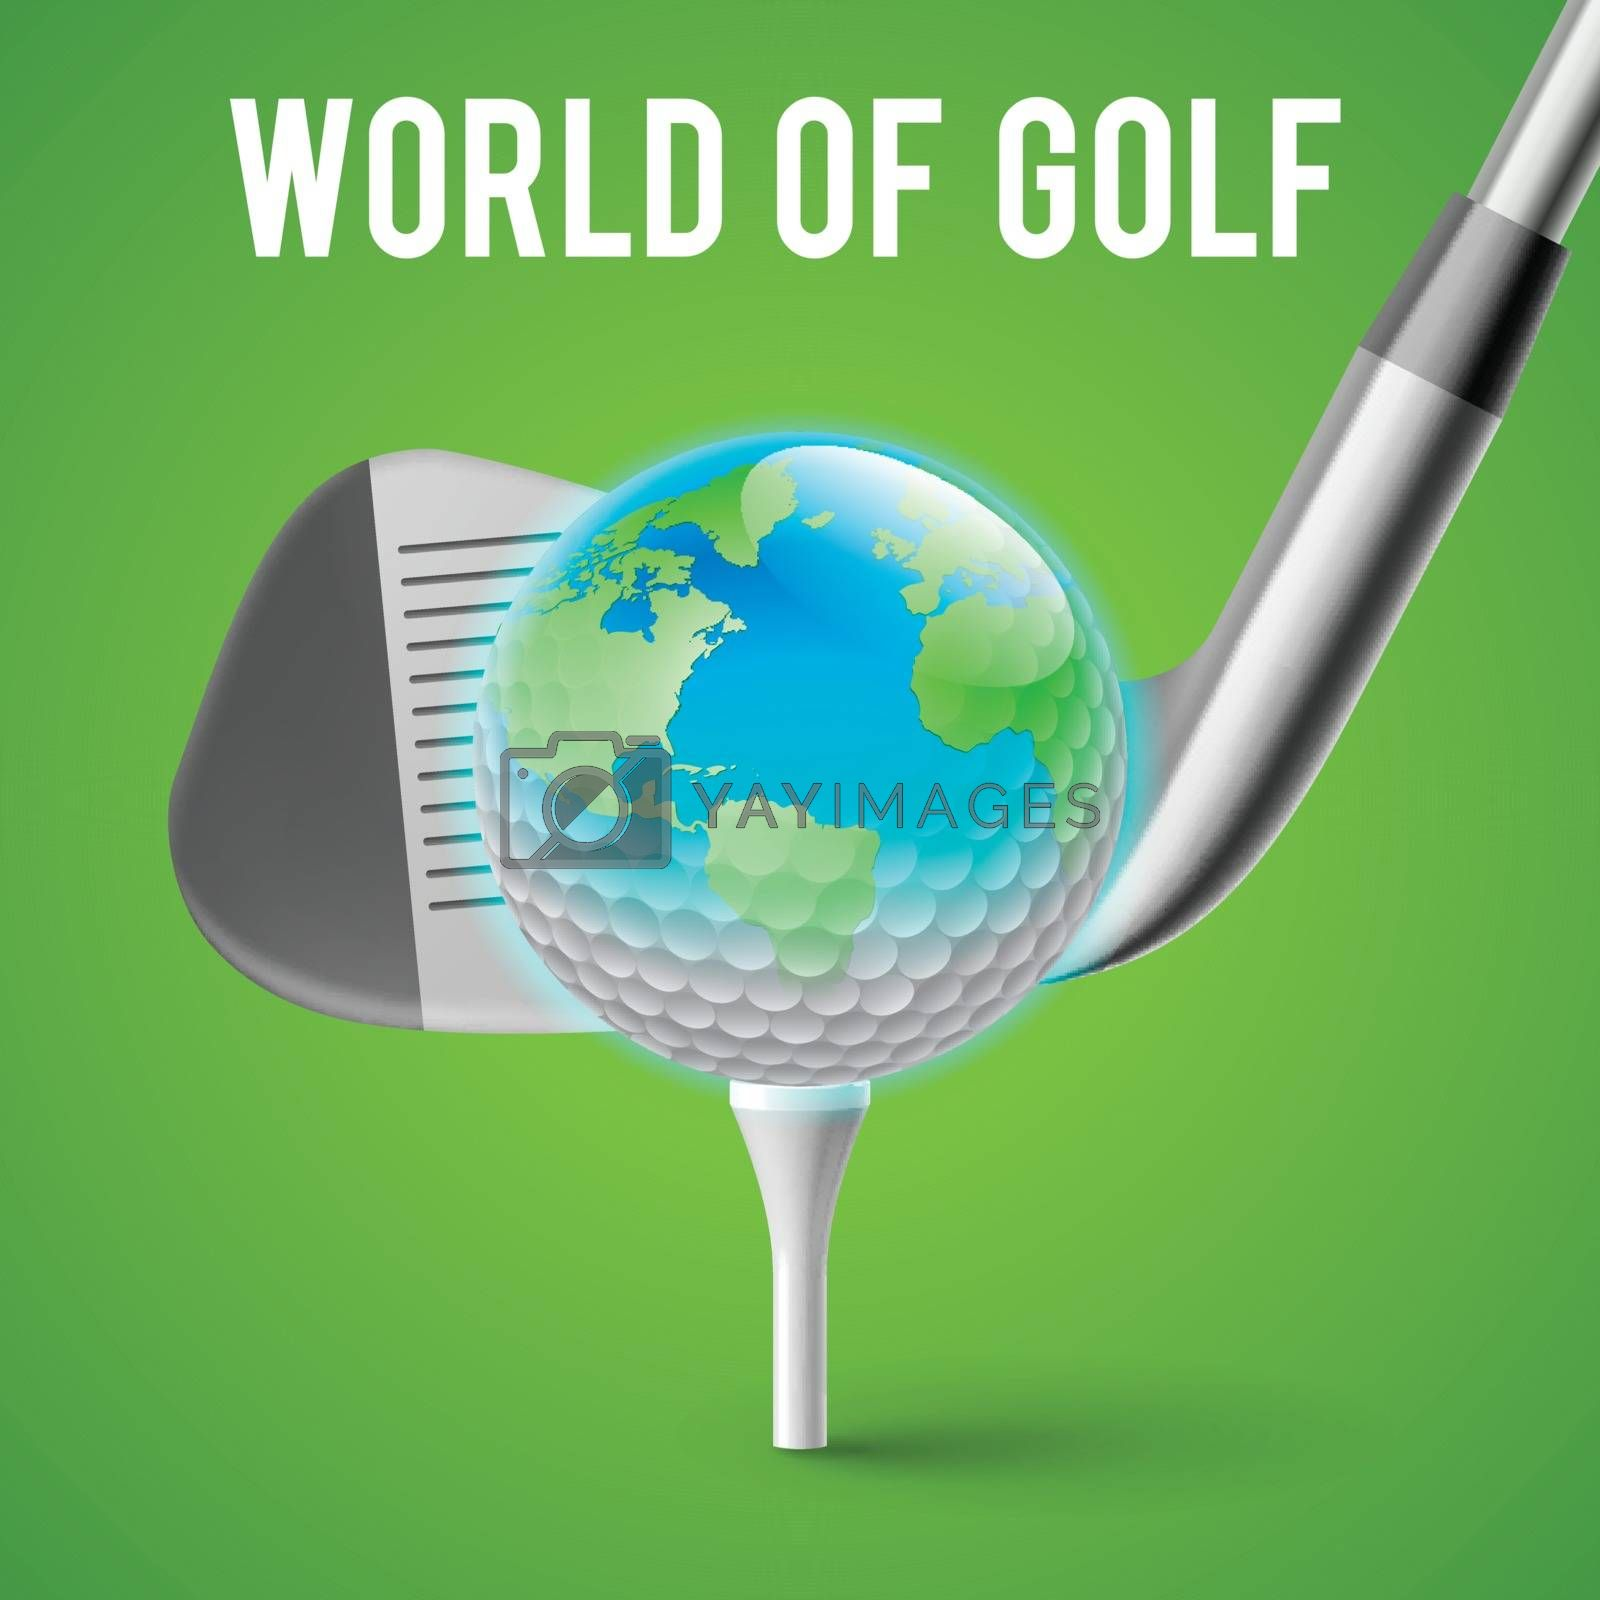 Concept Golf Tournament World. Illustration on Green Background